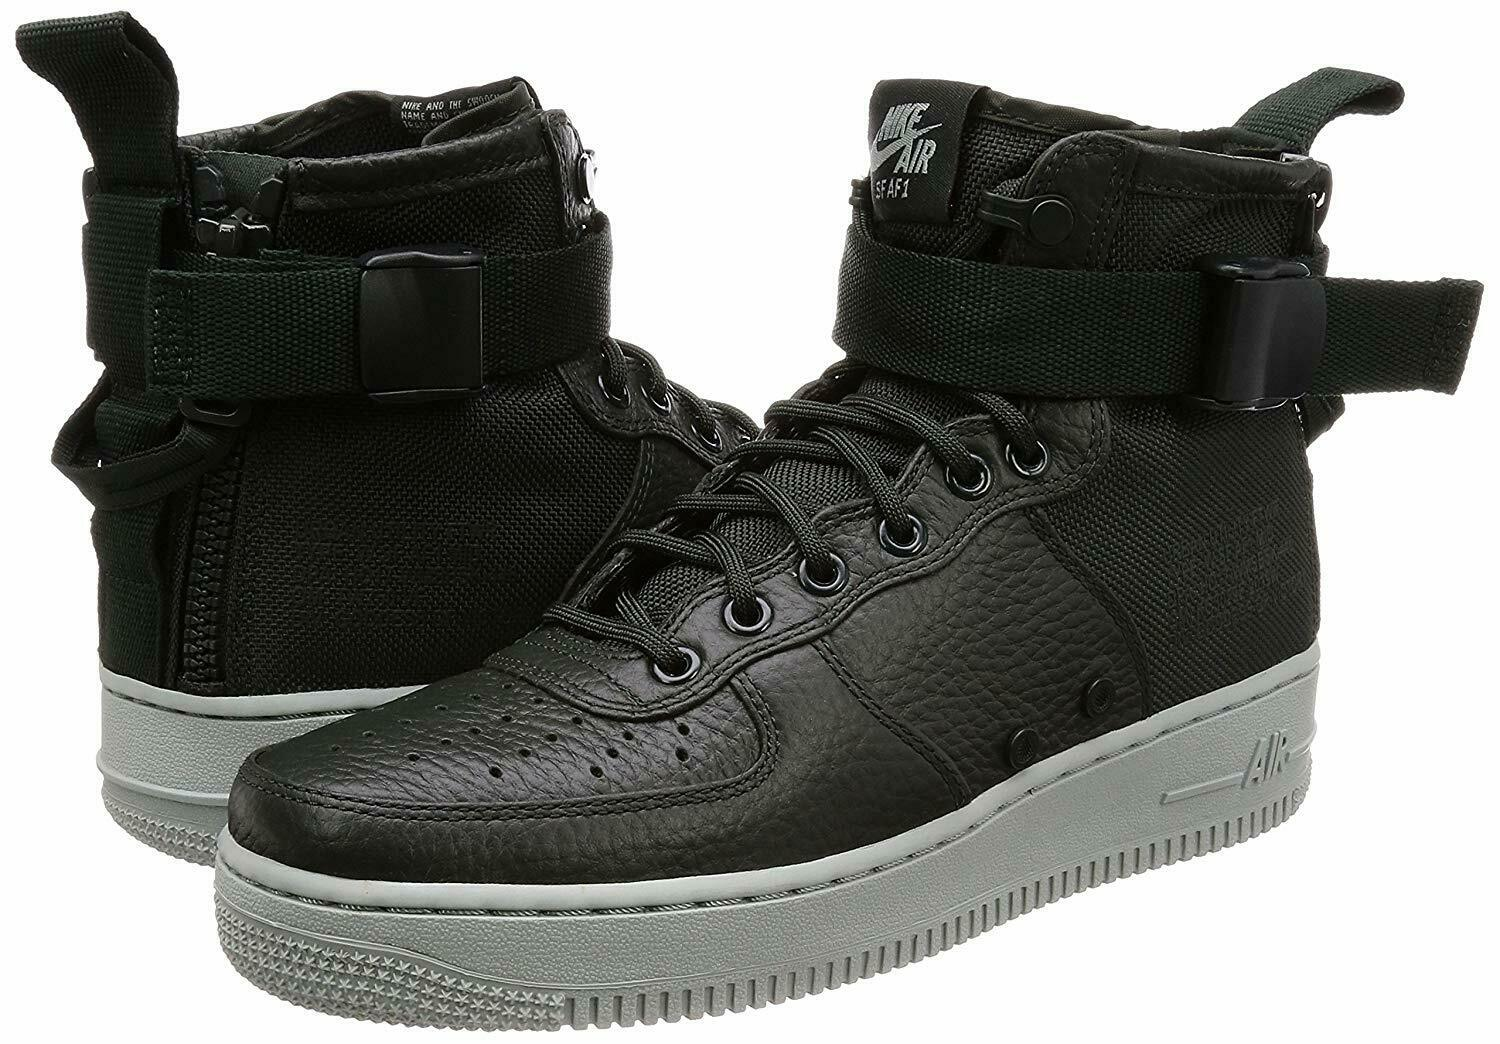 Women NIKE SF AIR FORCE 1 MID SIZE 8 NWOB